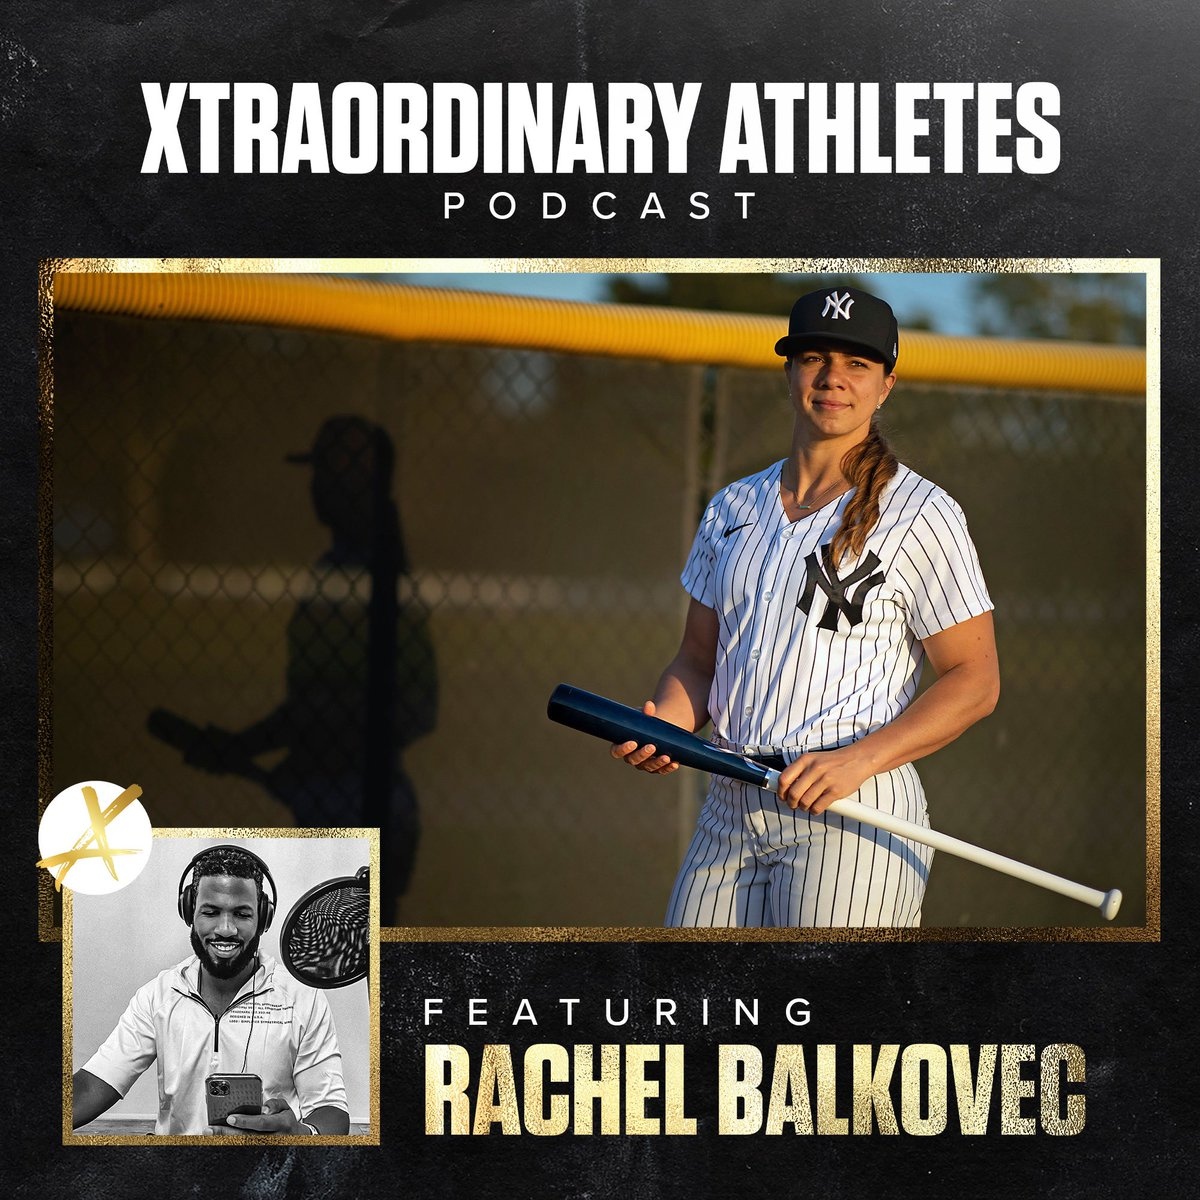 In Case you missed it! MLB's first woman hitting coach Joins Xtraordinary Athletes Podcast https://t.co/NTYckpe0EB https://t.co/42Zh3nzNz5